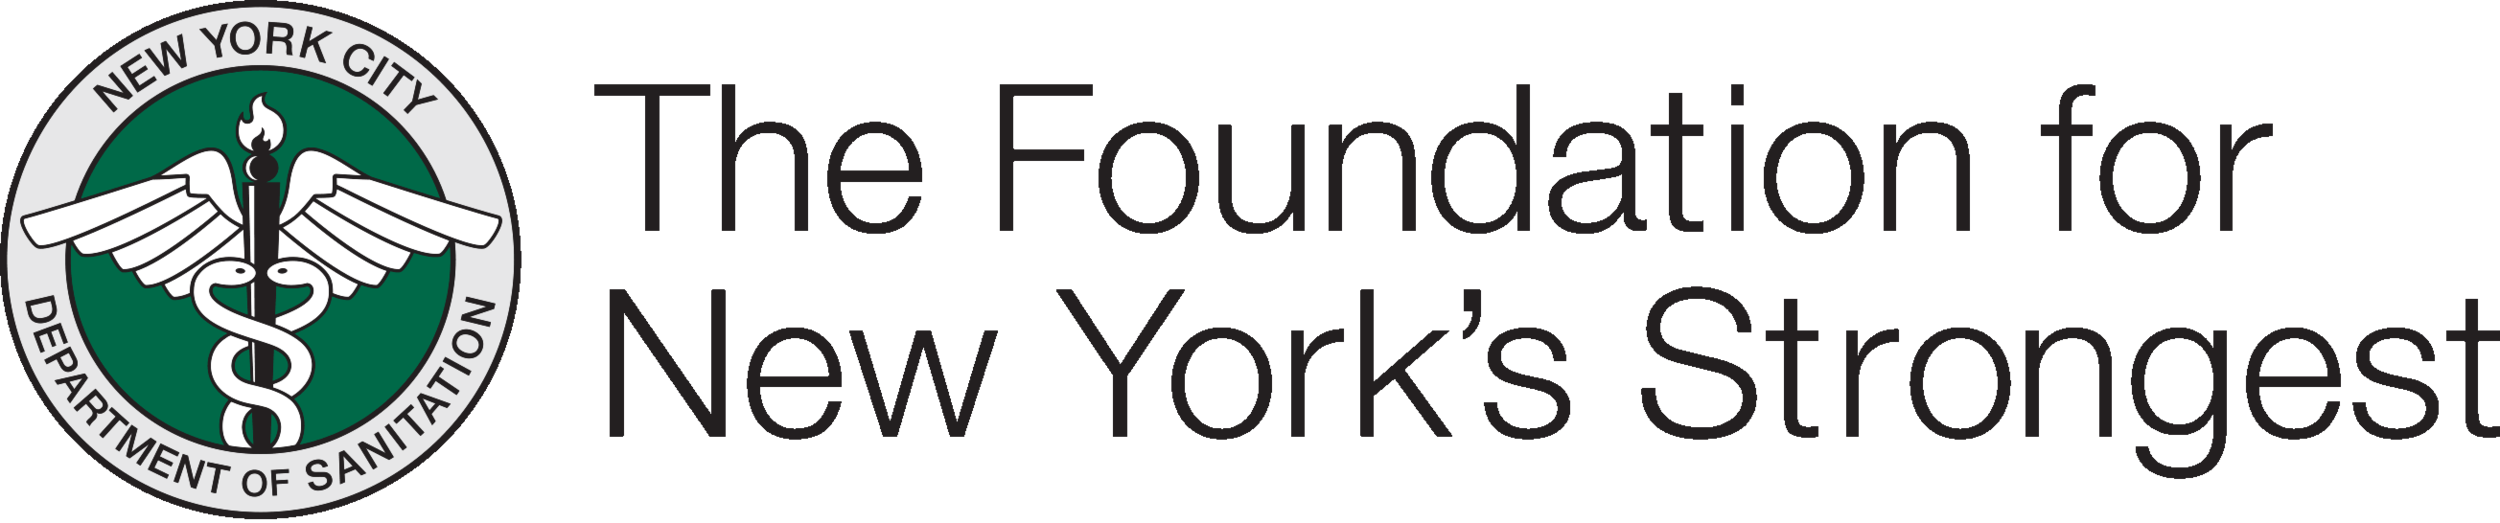 Foundation-NY-Strongest-logo.png